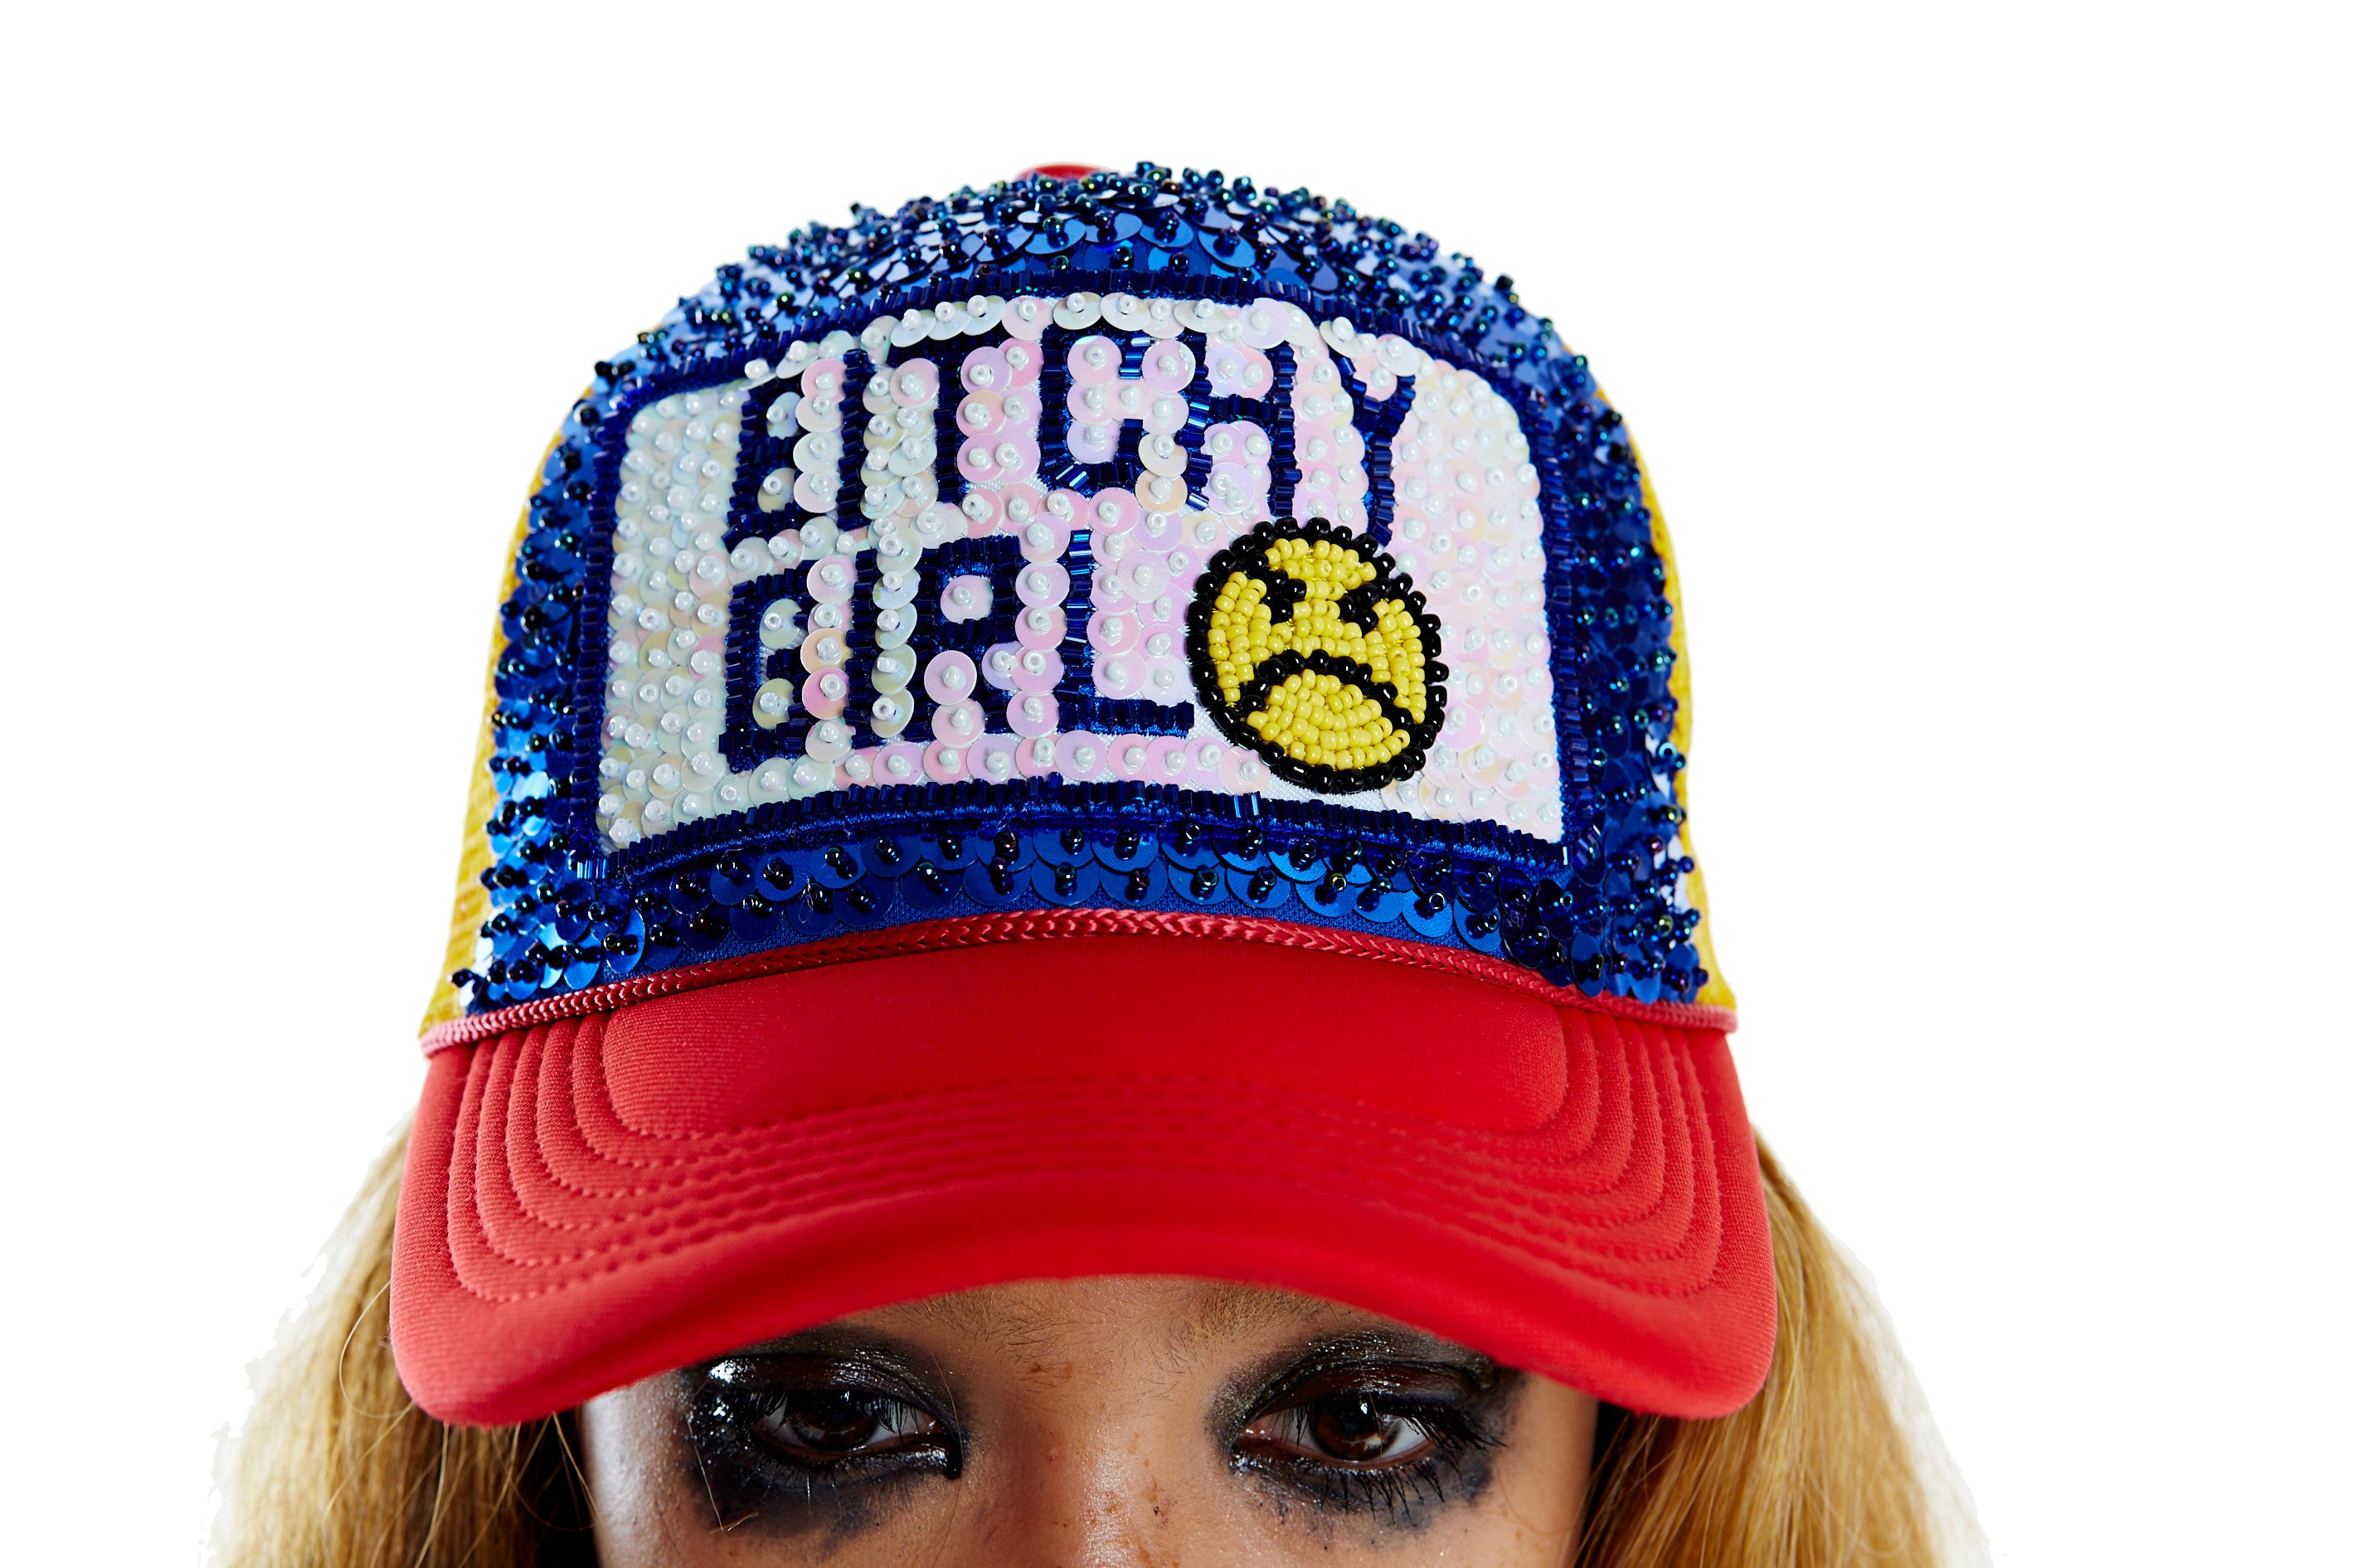 BITCHY GIRL Hat - Tri-color